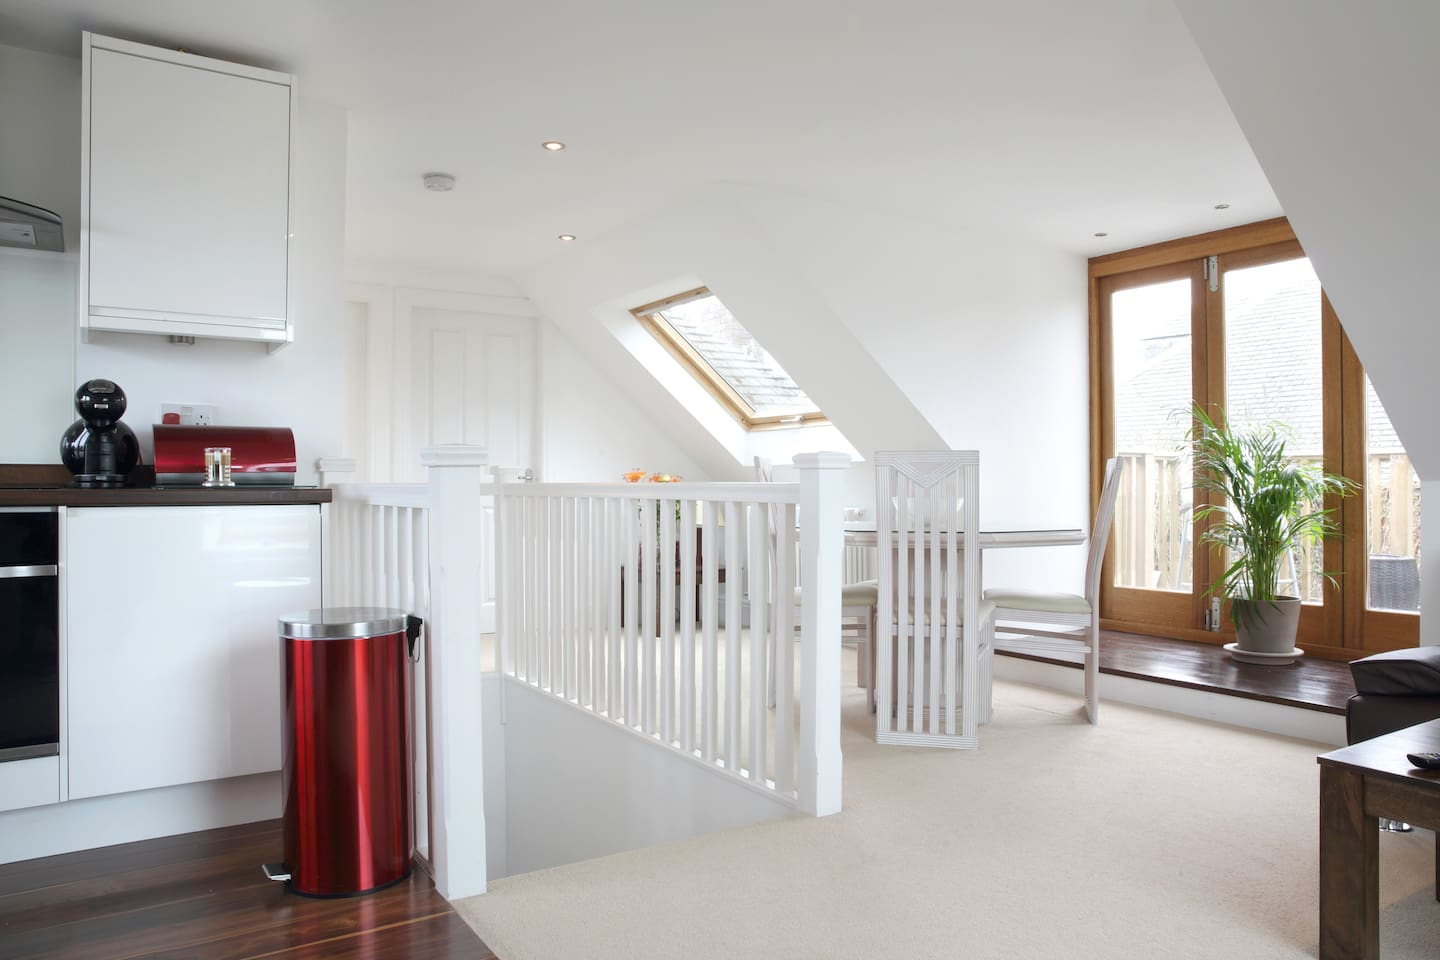 Light, bright and airy space, with sea views and sunny roof terrace. Close to city centre, by the beach, with free unrestricted parking. Great location to explore but also unwind.